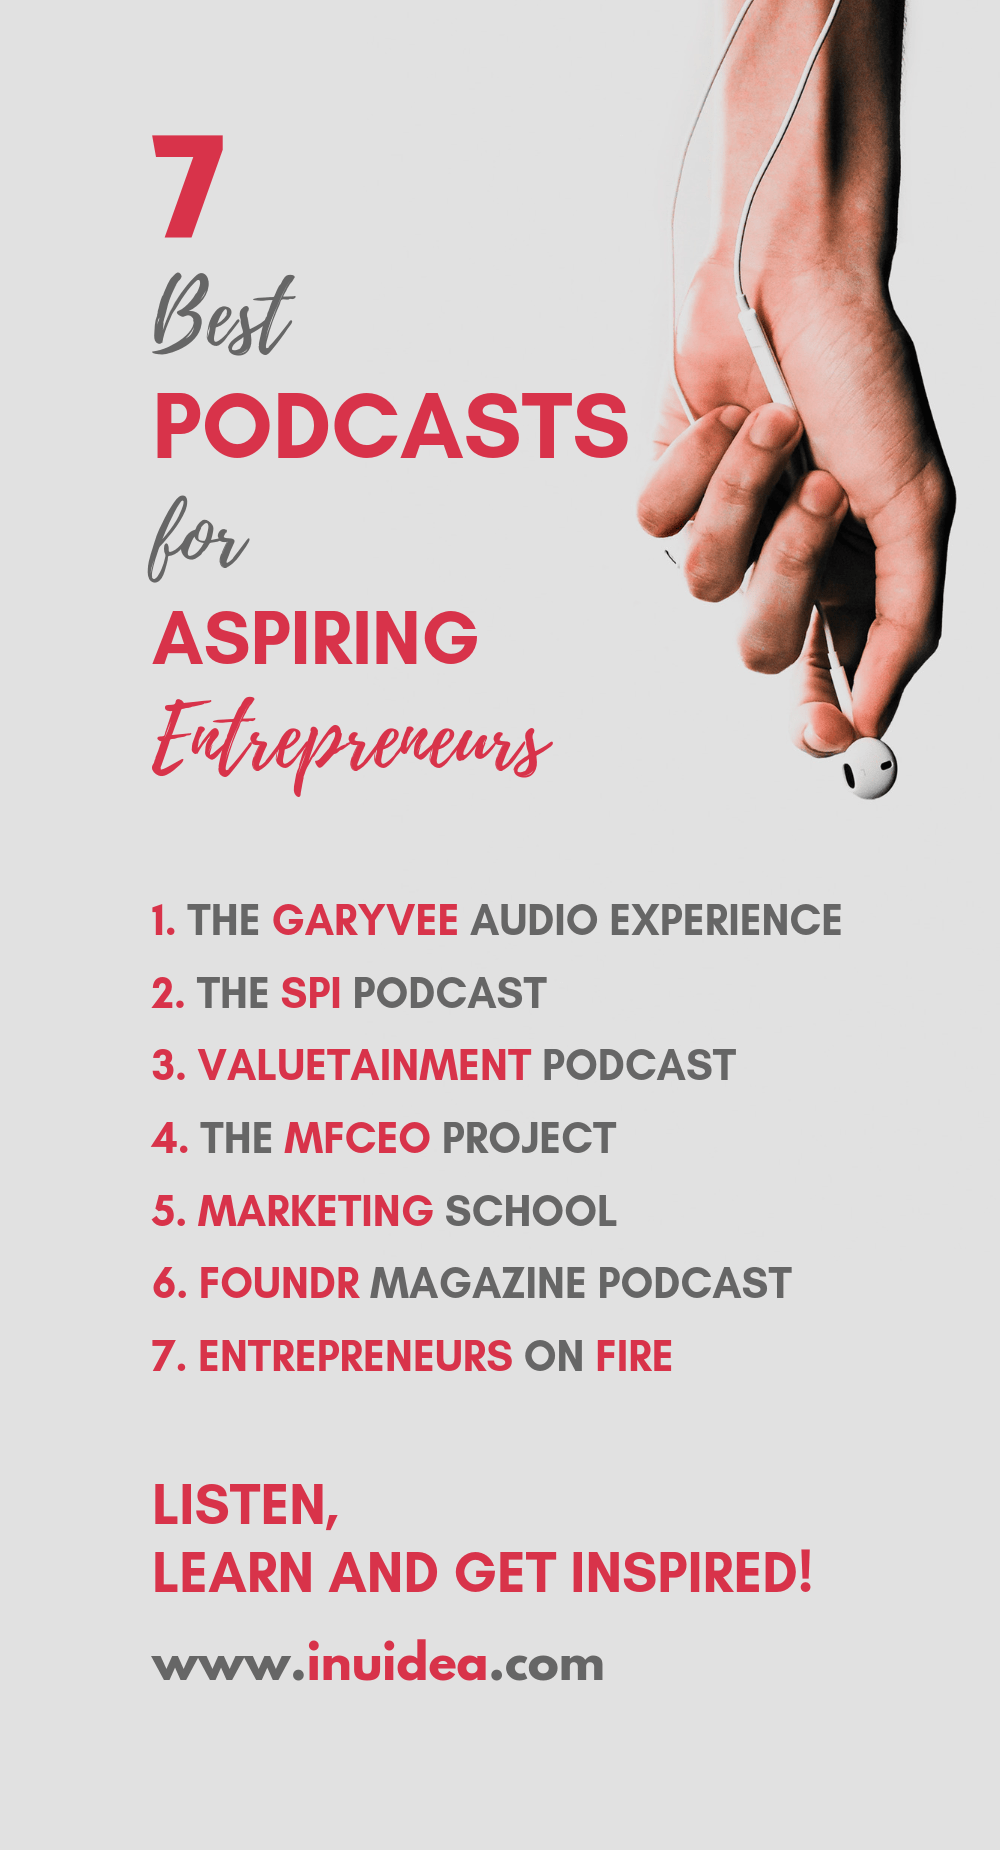 7 Best Podcasts for Aspiring Entrepreneurs - Learn and Get Inspired!